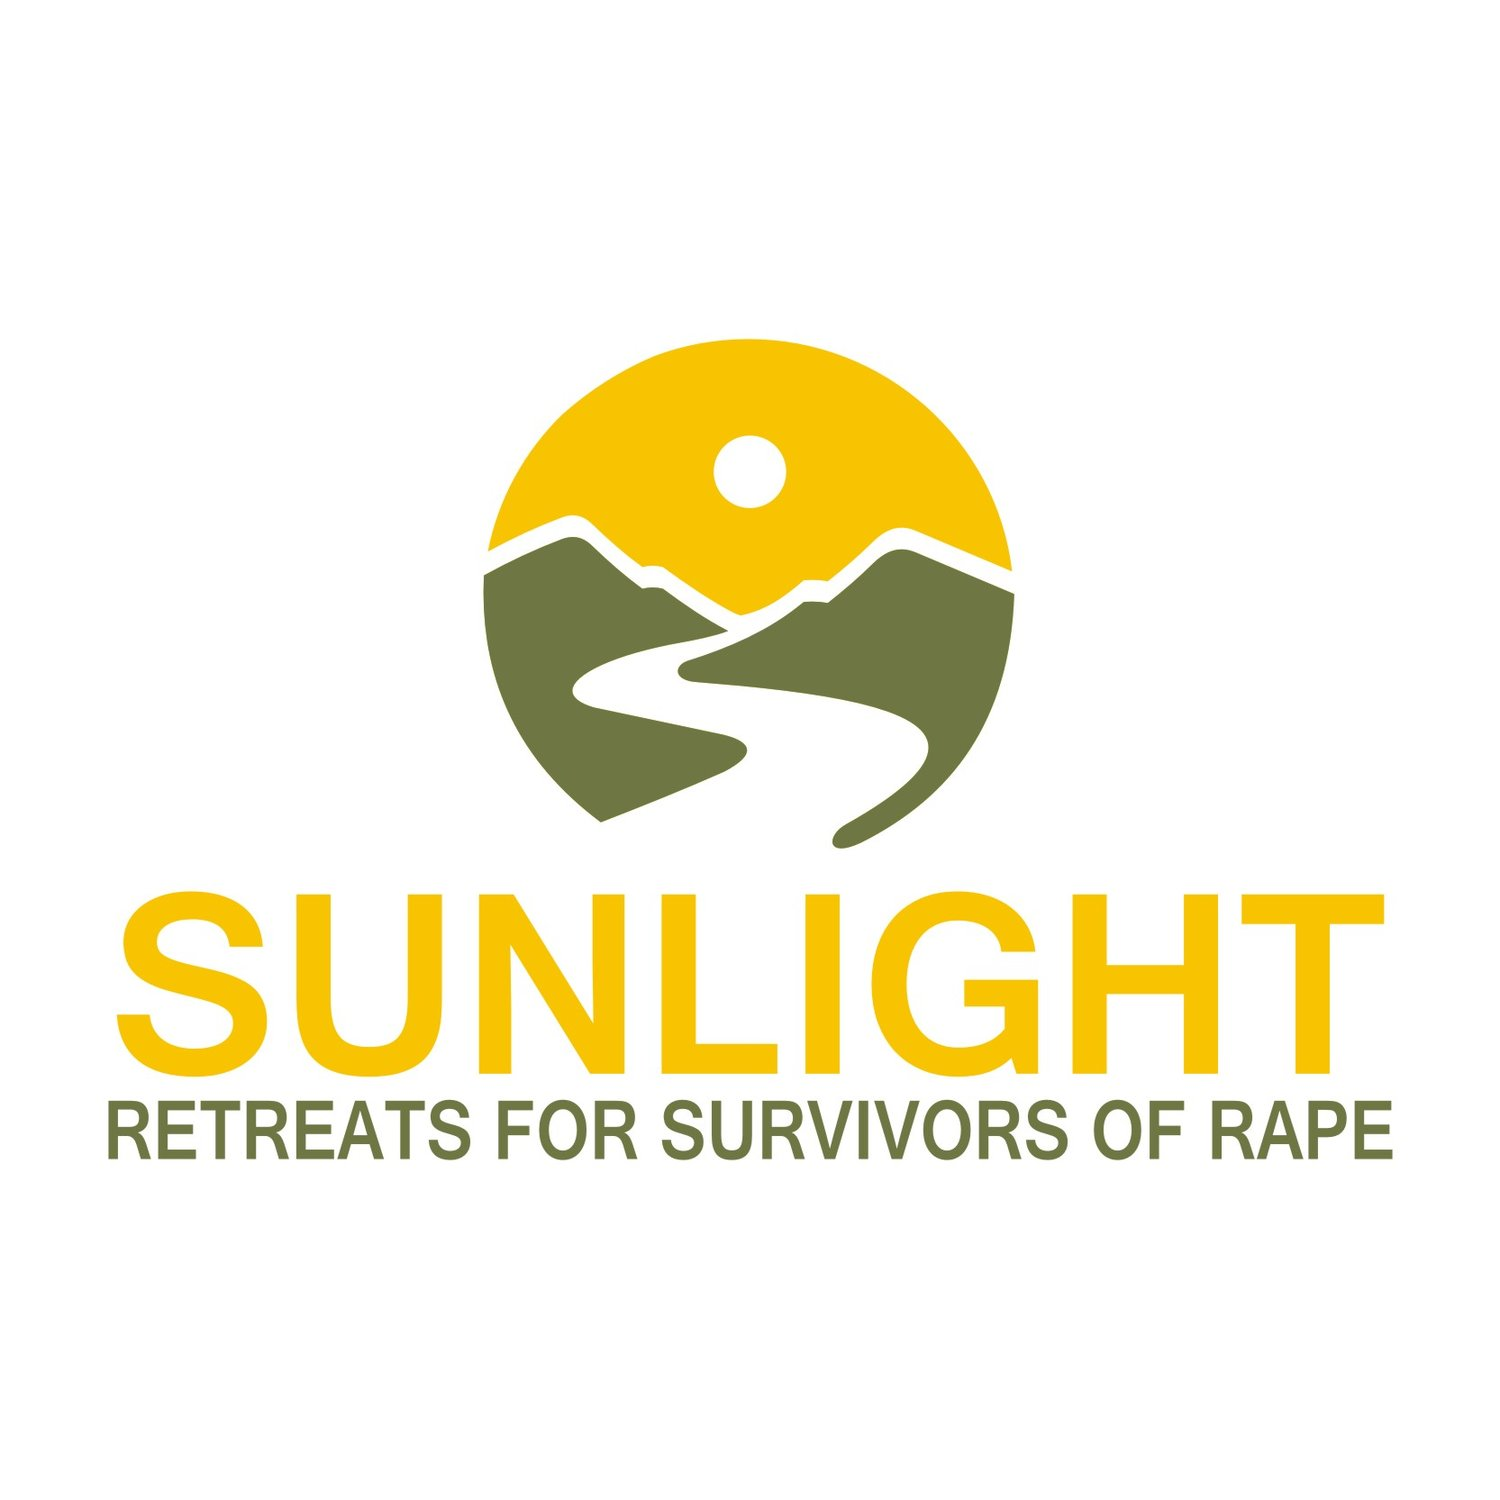 Trauma Retreats and Workshops |Sunlight Retreats: Bringing Sunlight To Survivors Of  Rape